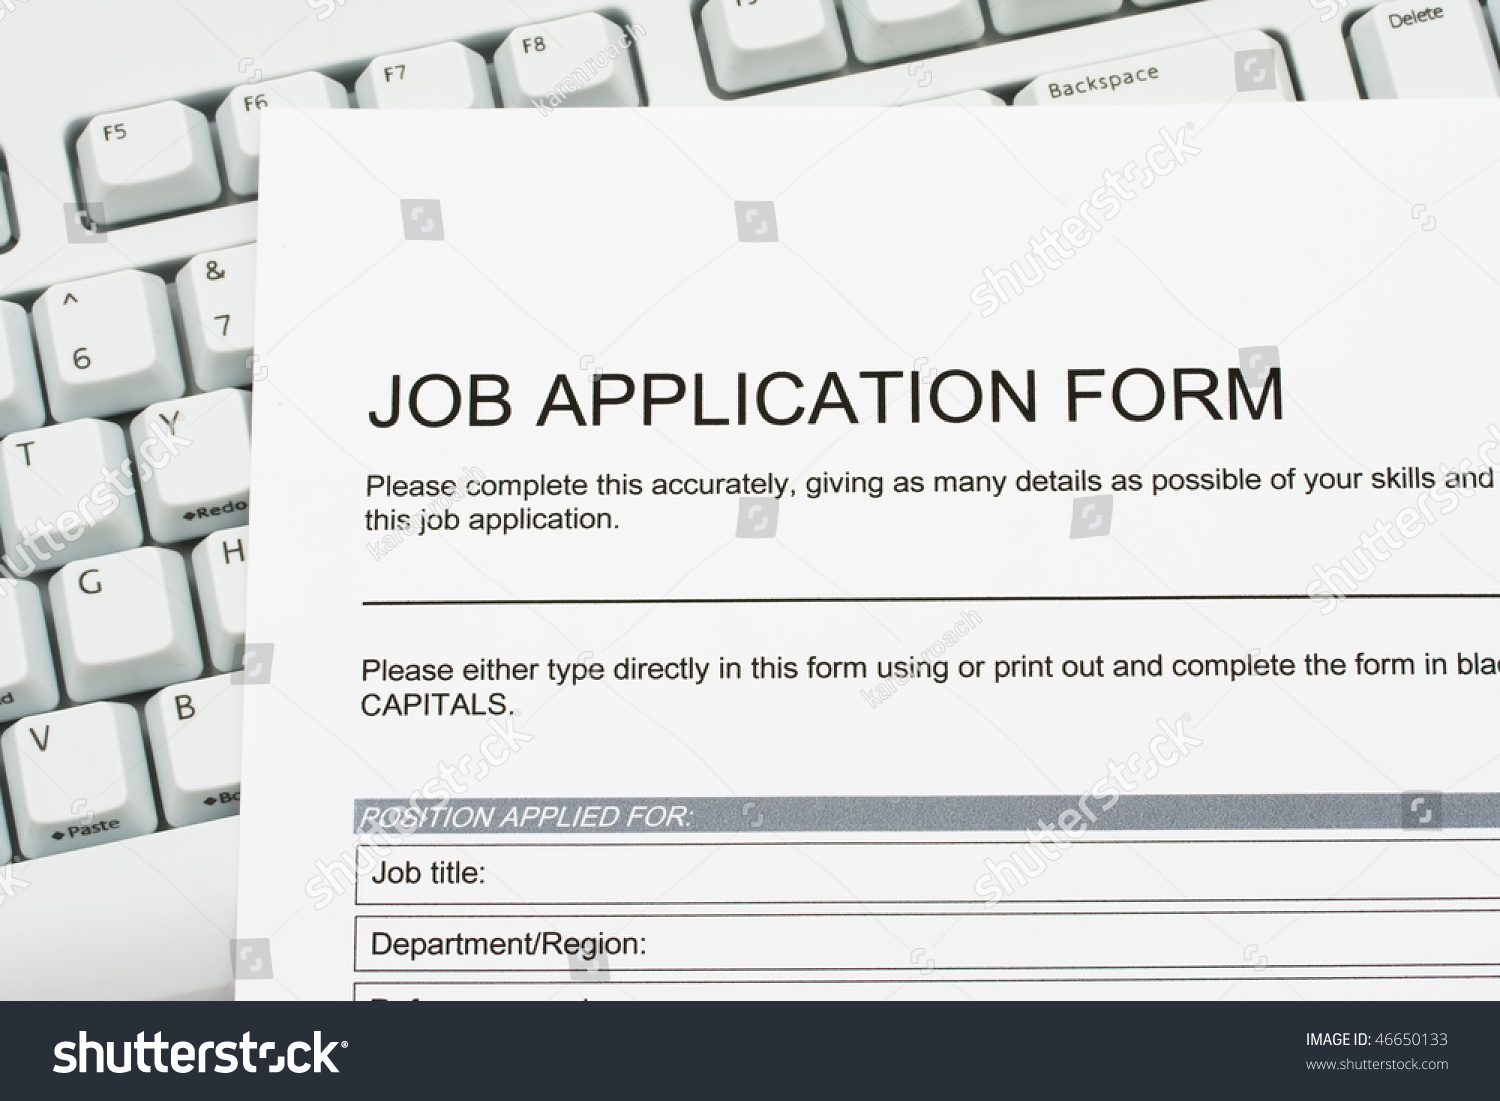 a job application jobs sitting on a computer keyboard apply for apply for jobs online preview save to a lightbox